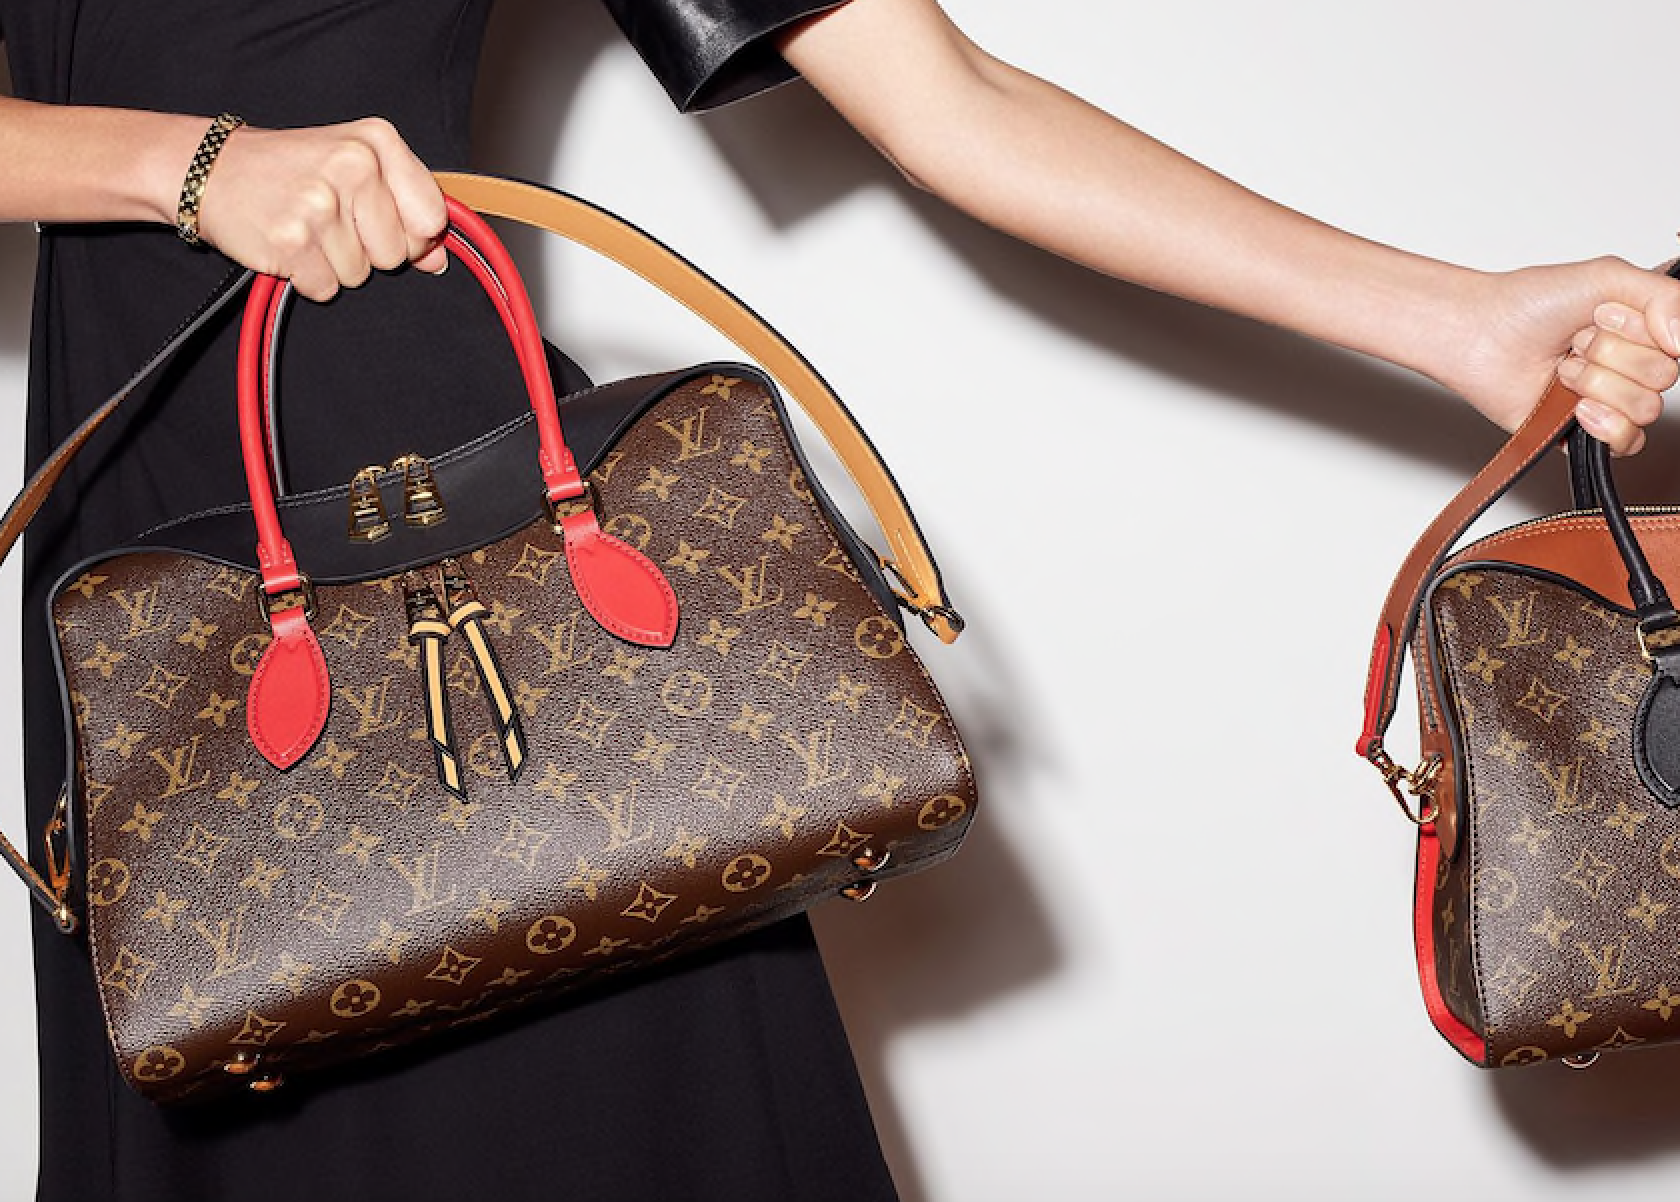 A Louis Vuitton Employee is at the Center of $15 Million-Plus Counterfeit Bust